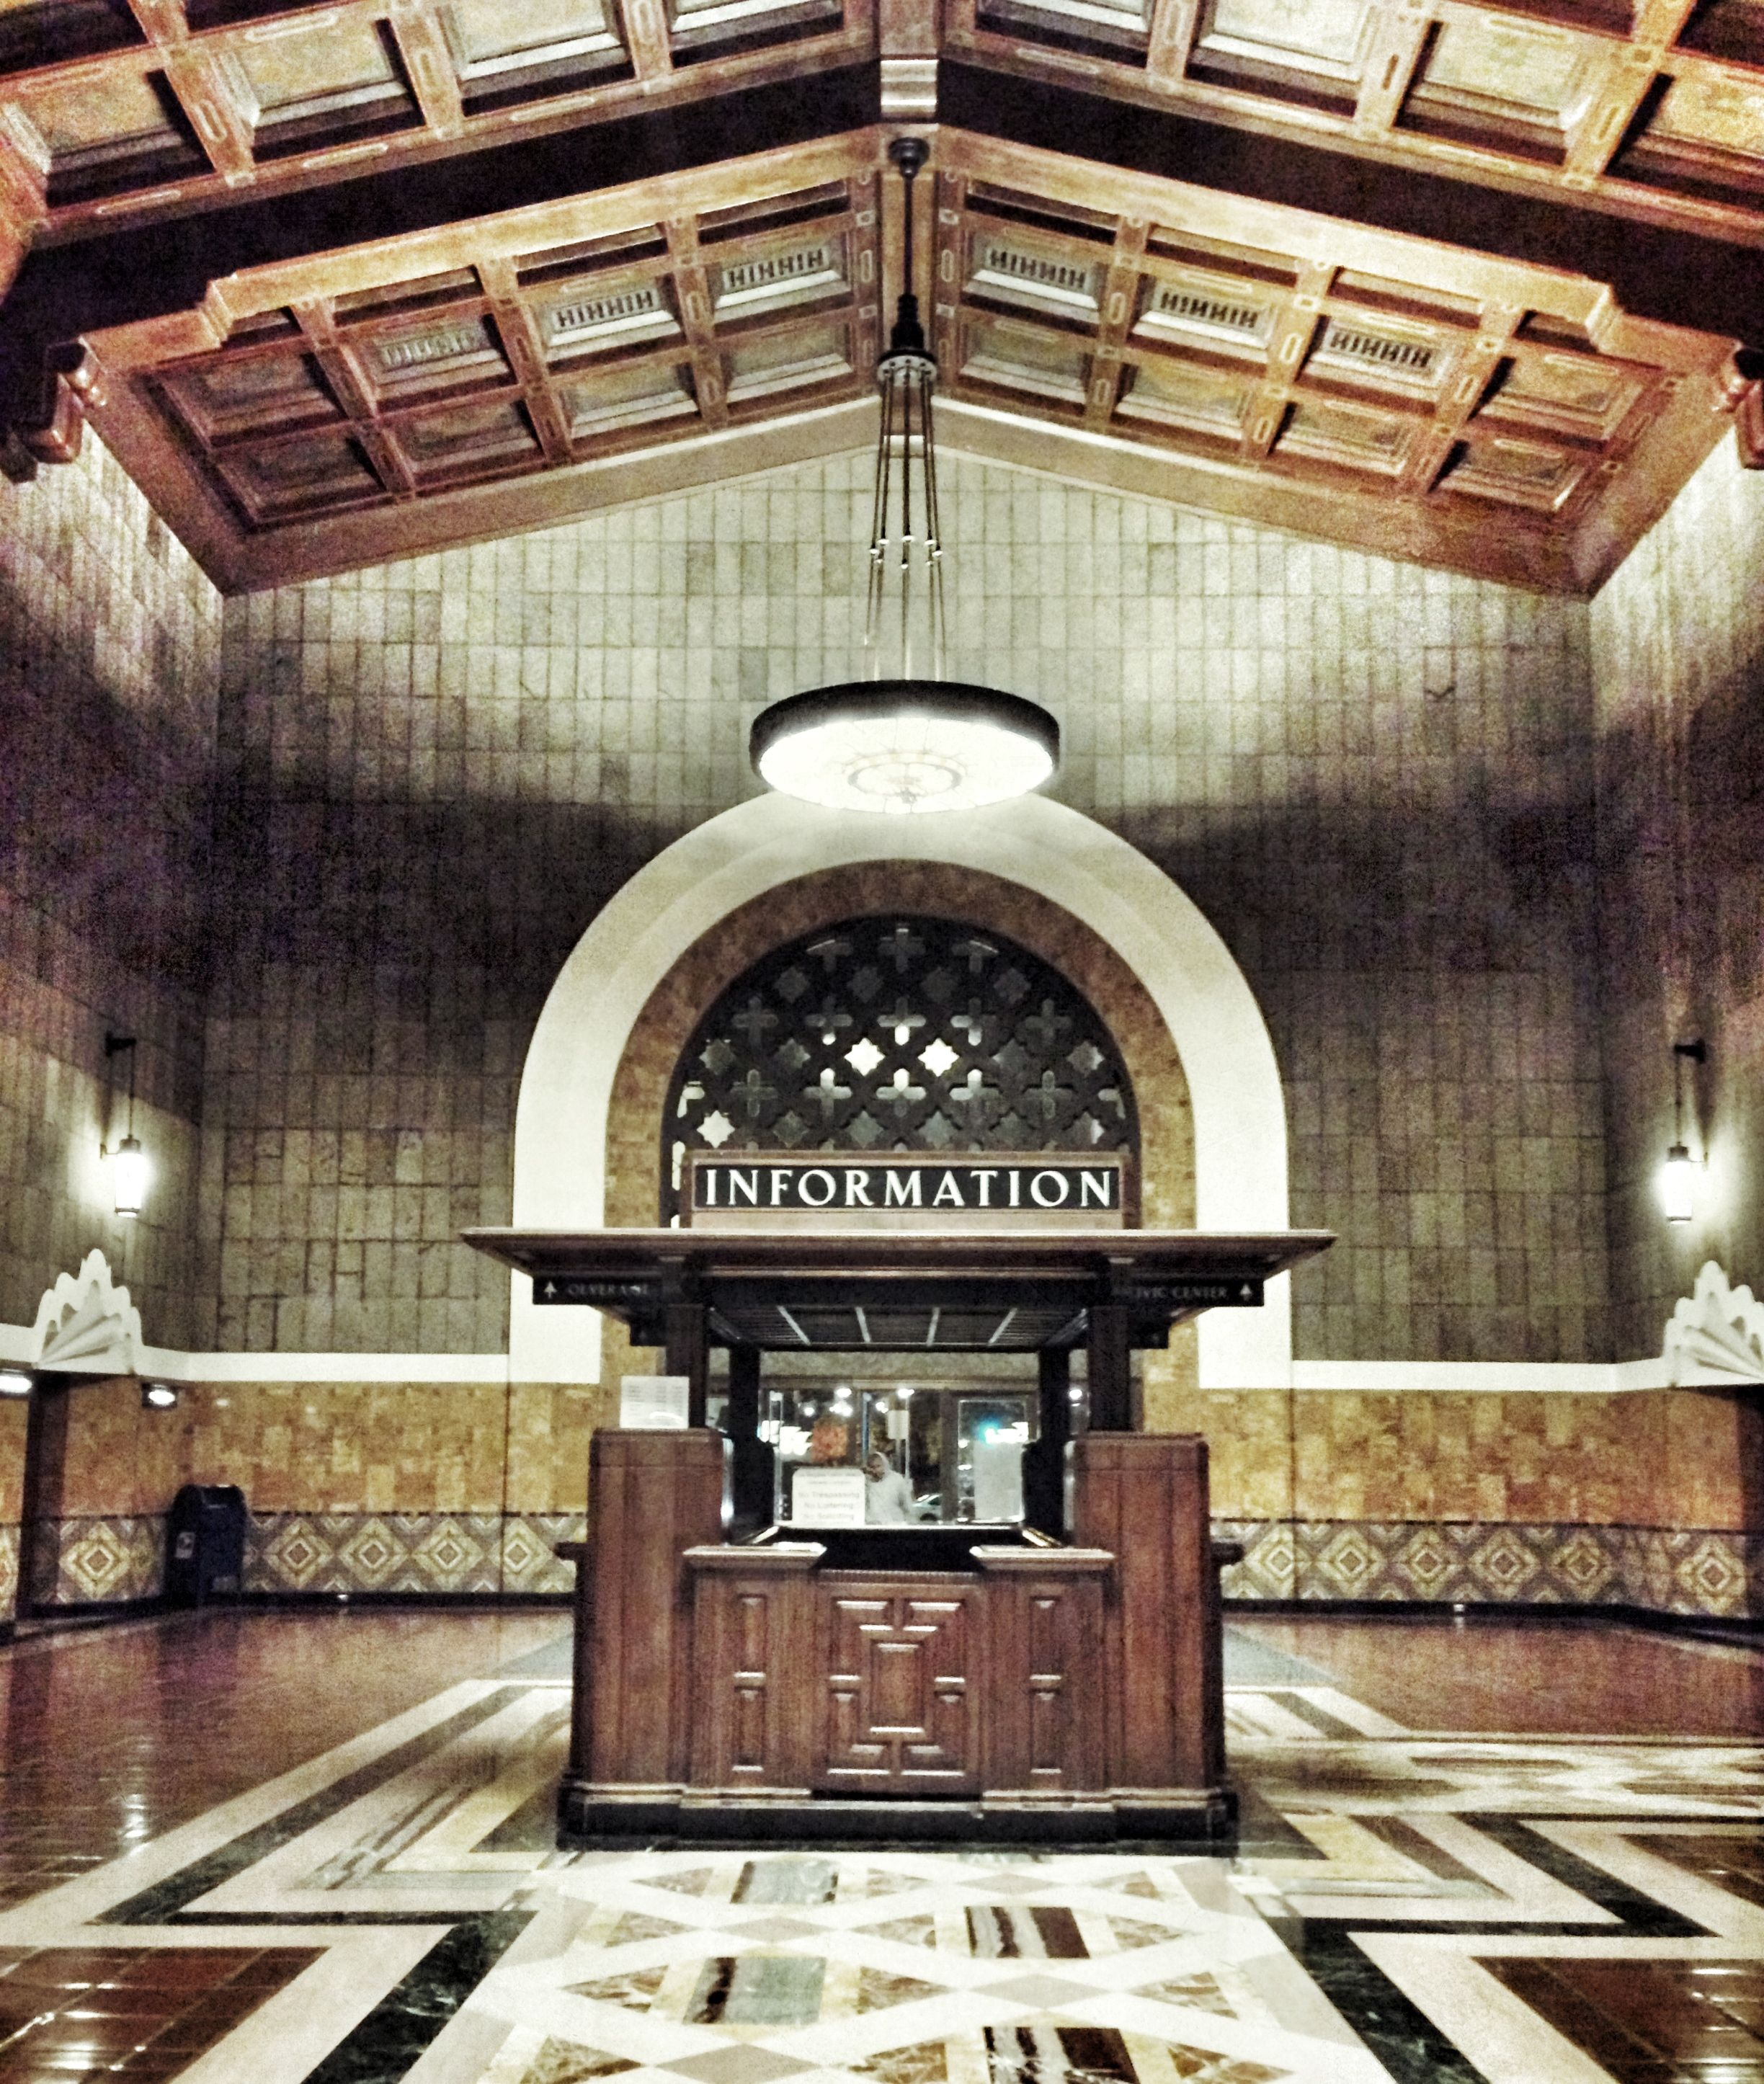 Pin By Allison On California Love Los Angeles Architecture Union Station Vintage Train